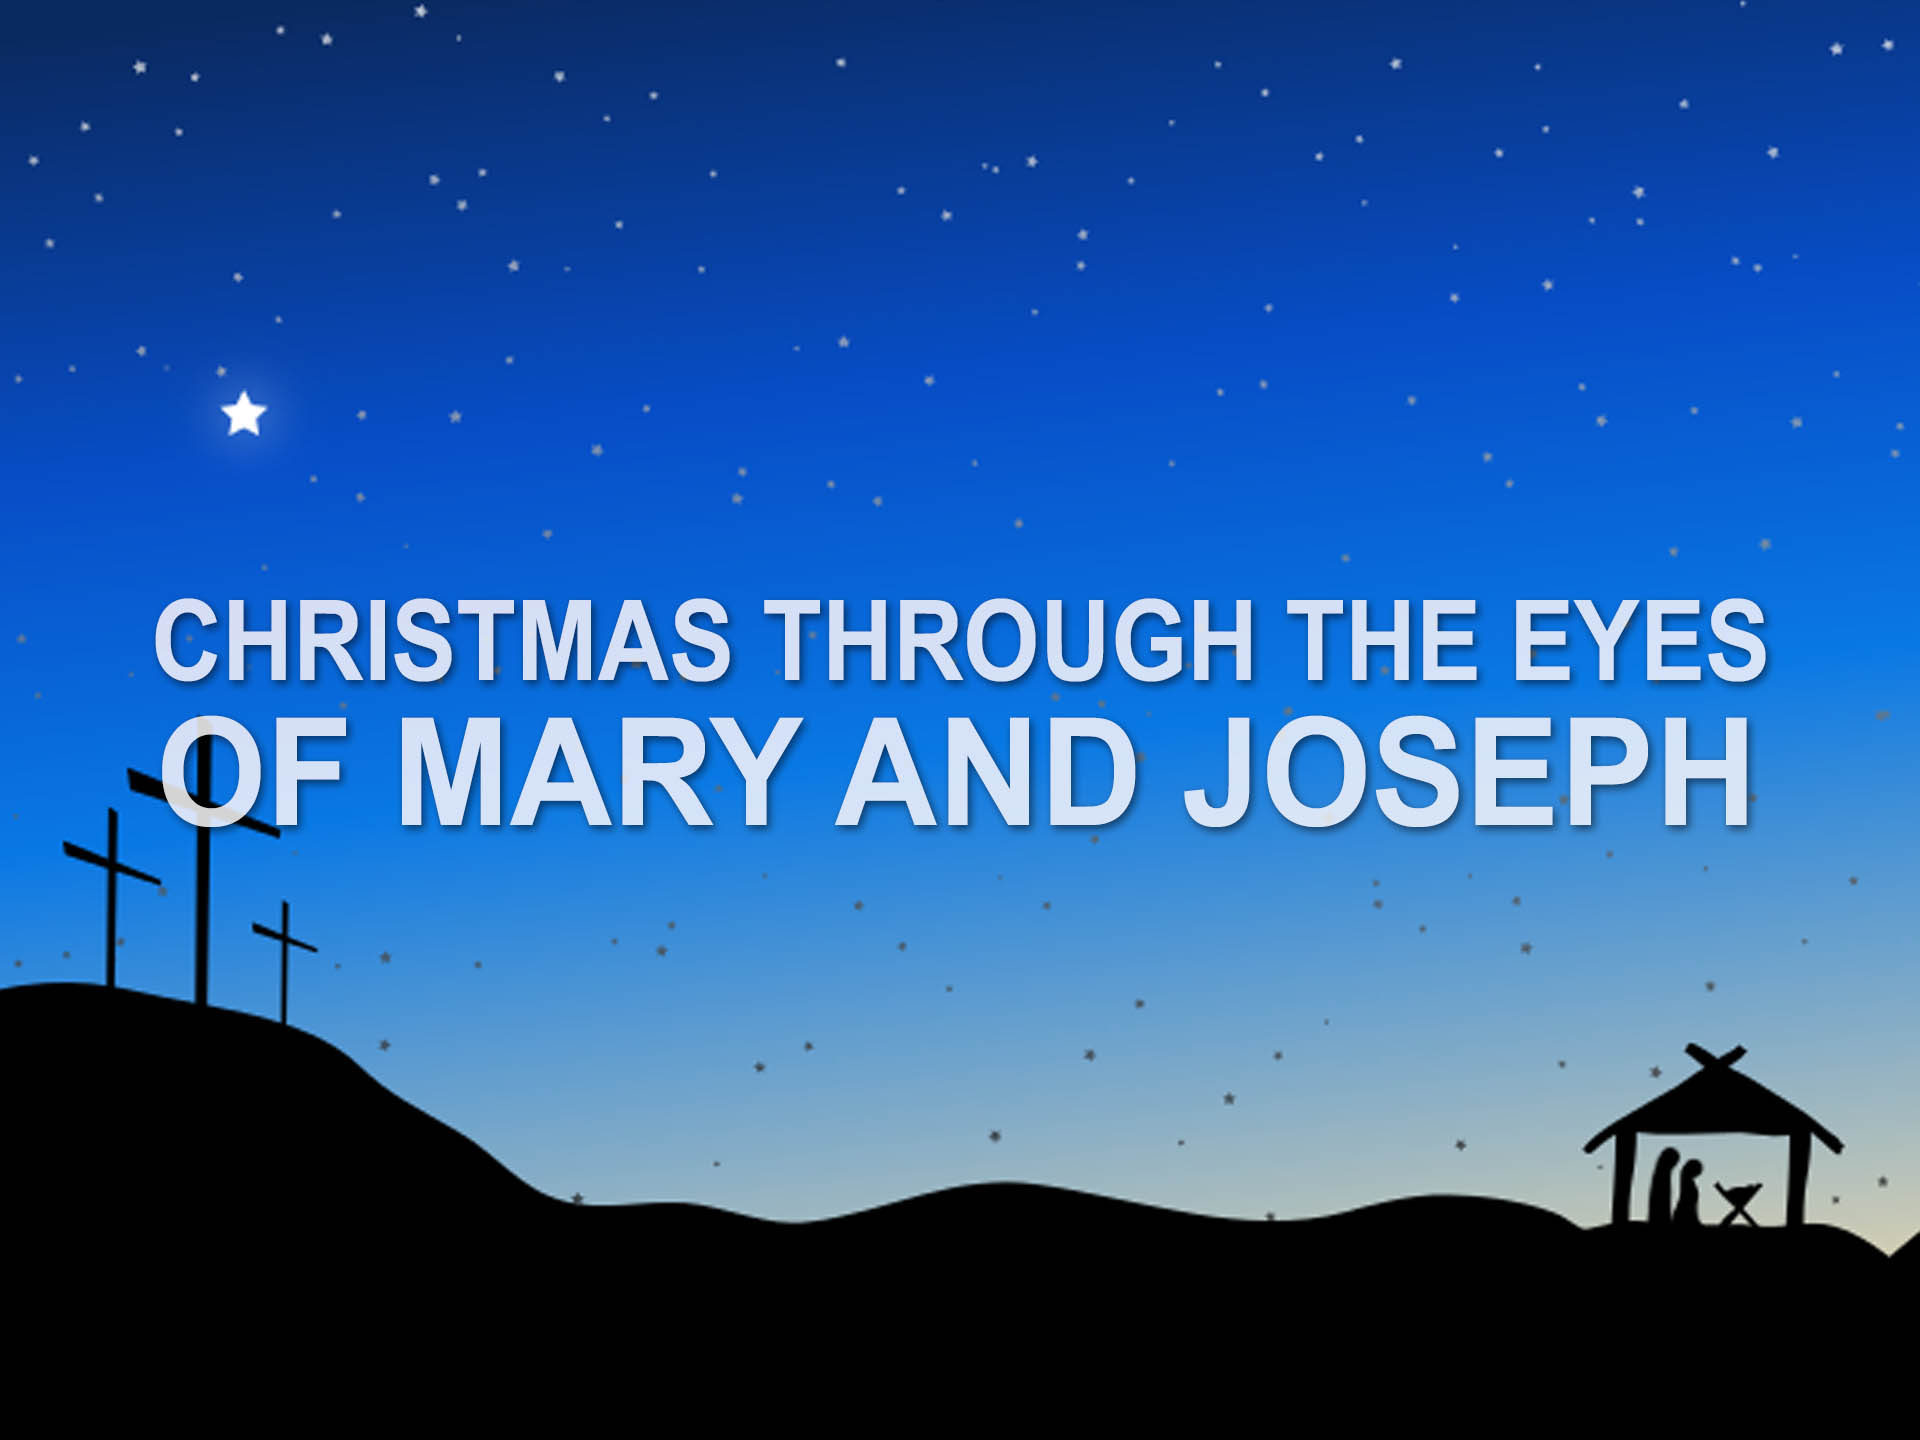 Christmas Through The Eyes of Mary and Joseph